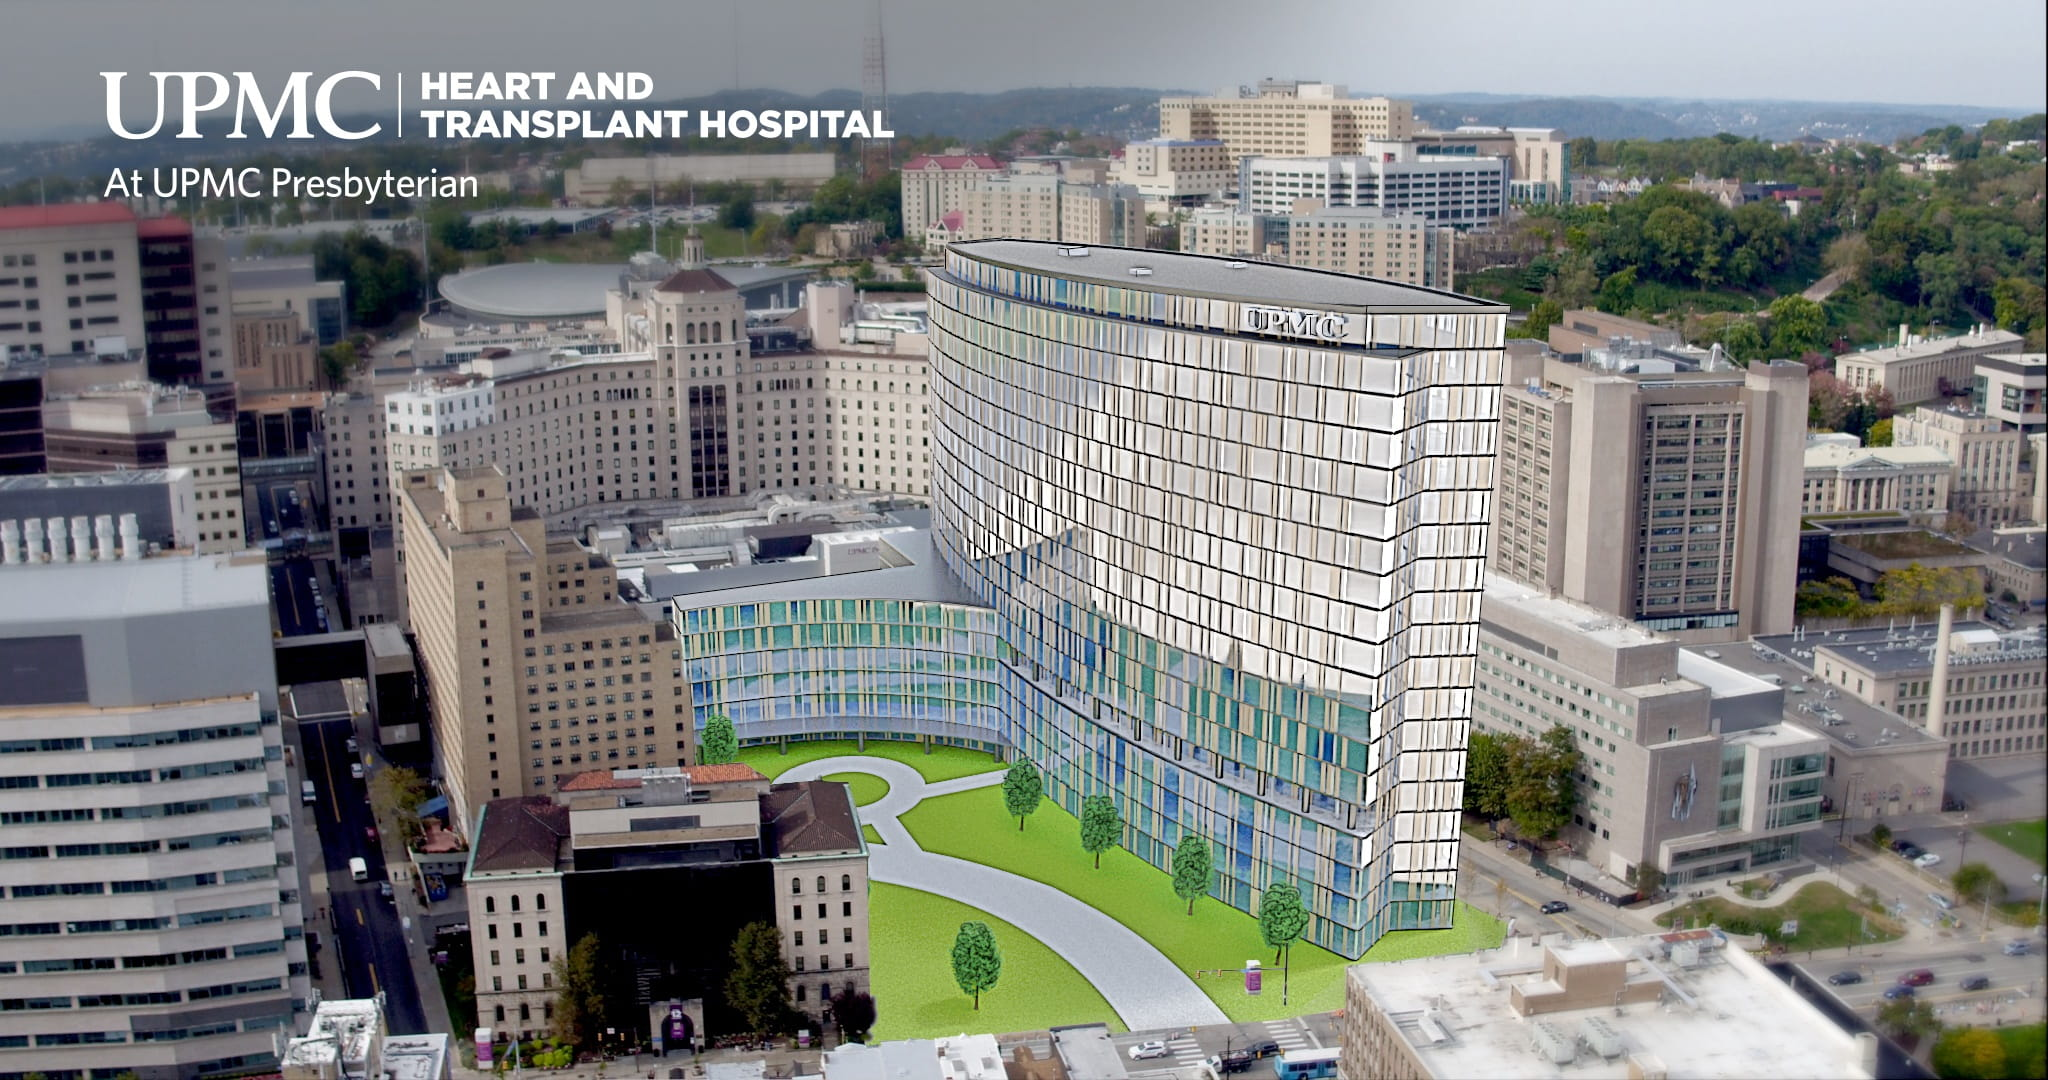 UPMC Heart and Transplant Hospital at UPMC Presbyterian artist rendering